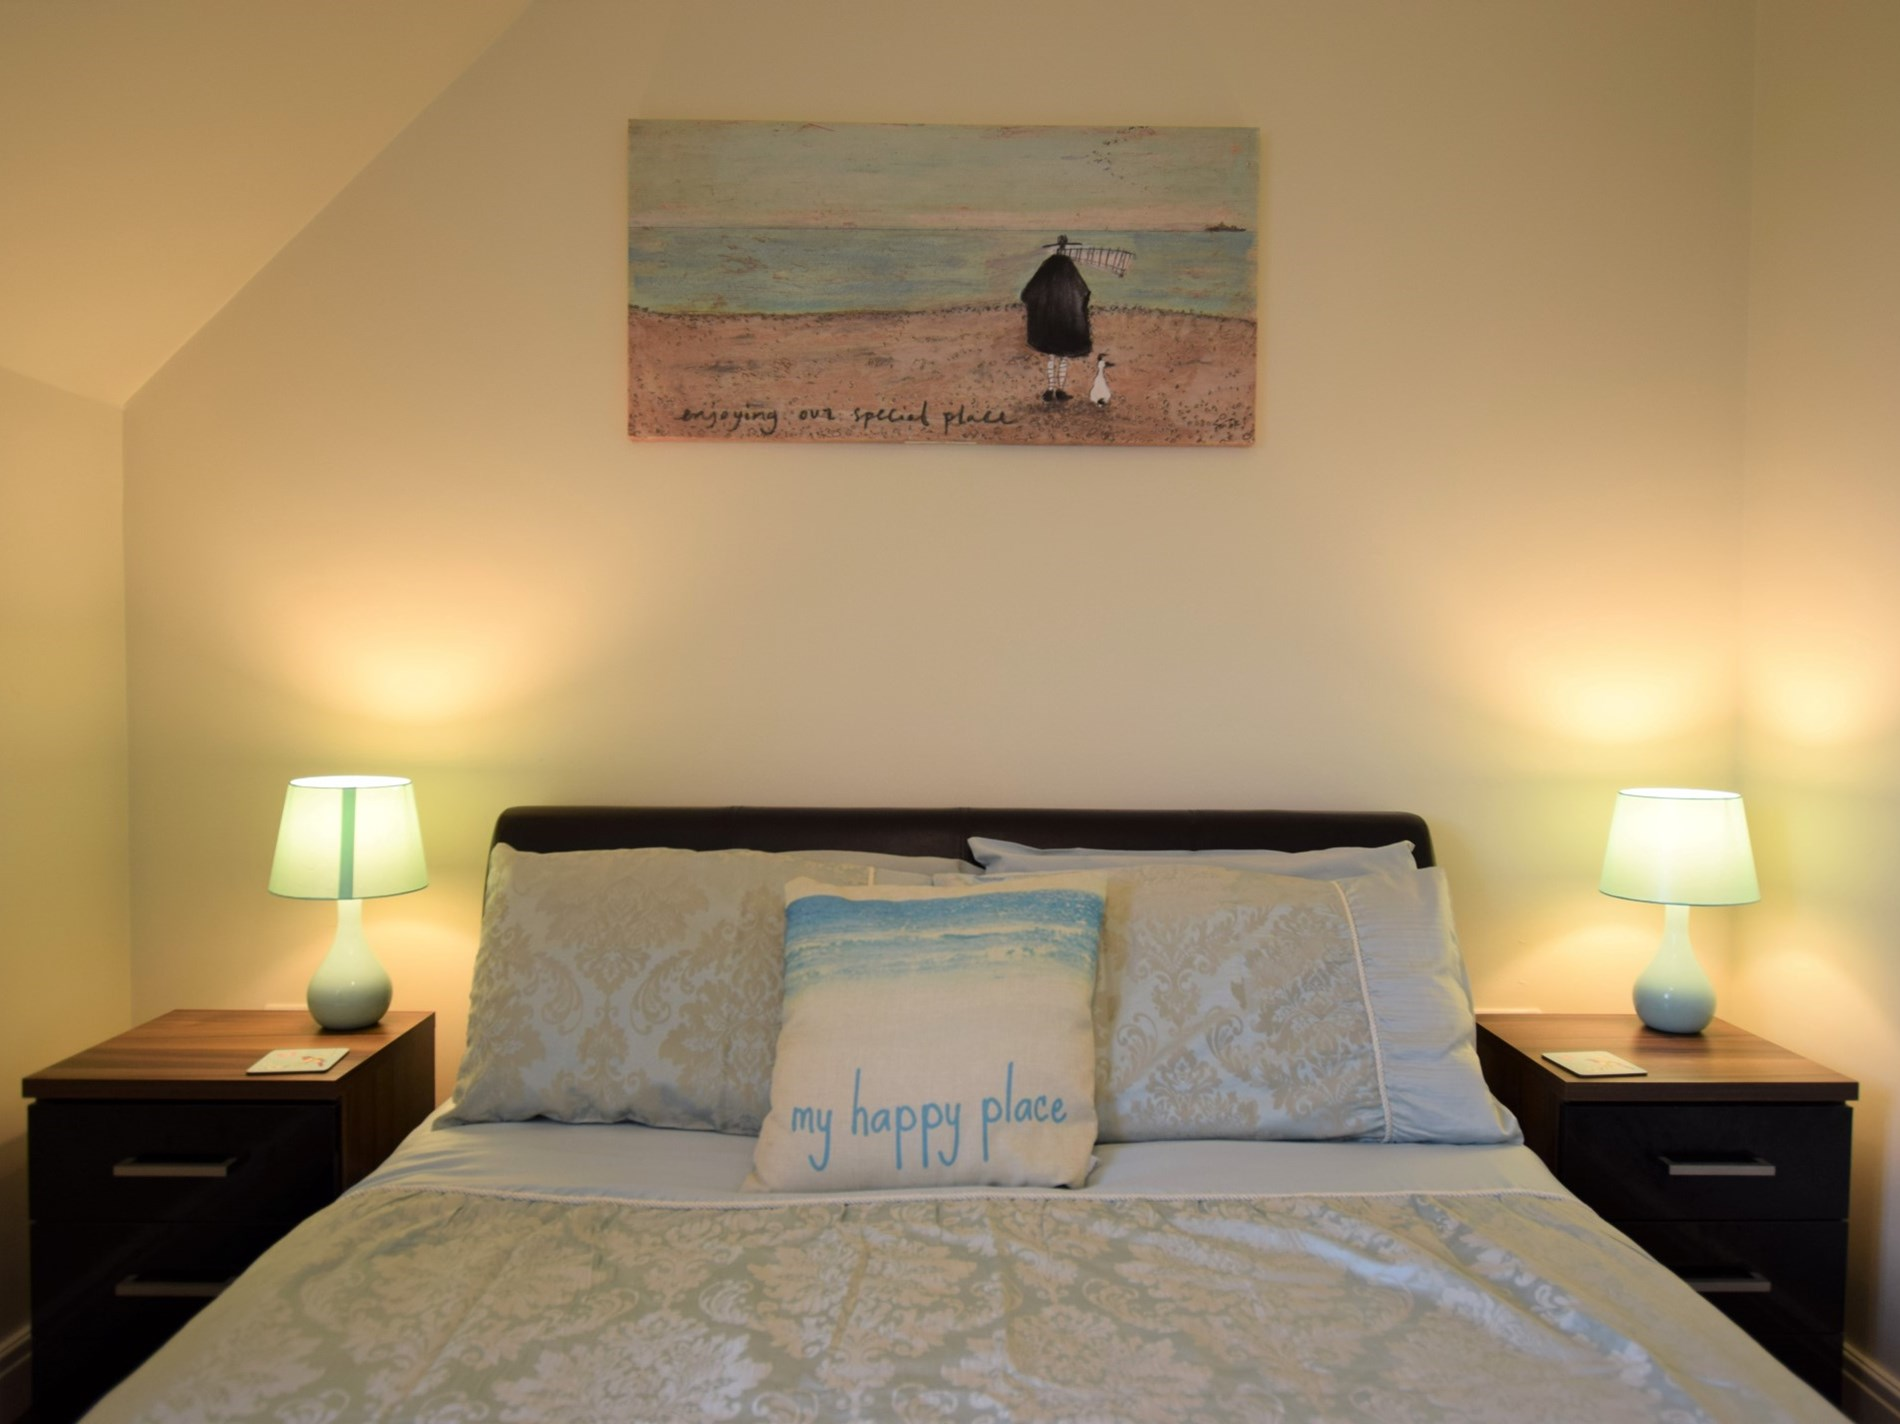 2 Bedroom Cottage in Filey, Yorkshire Dales